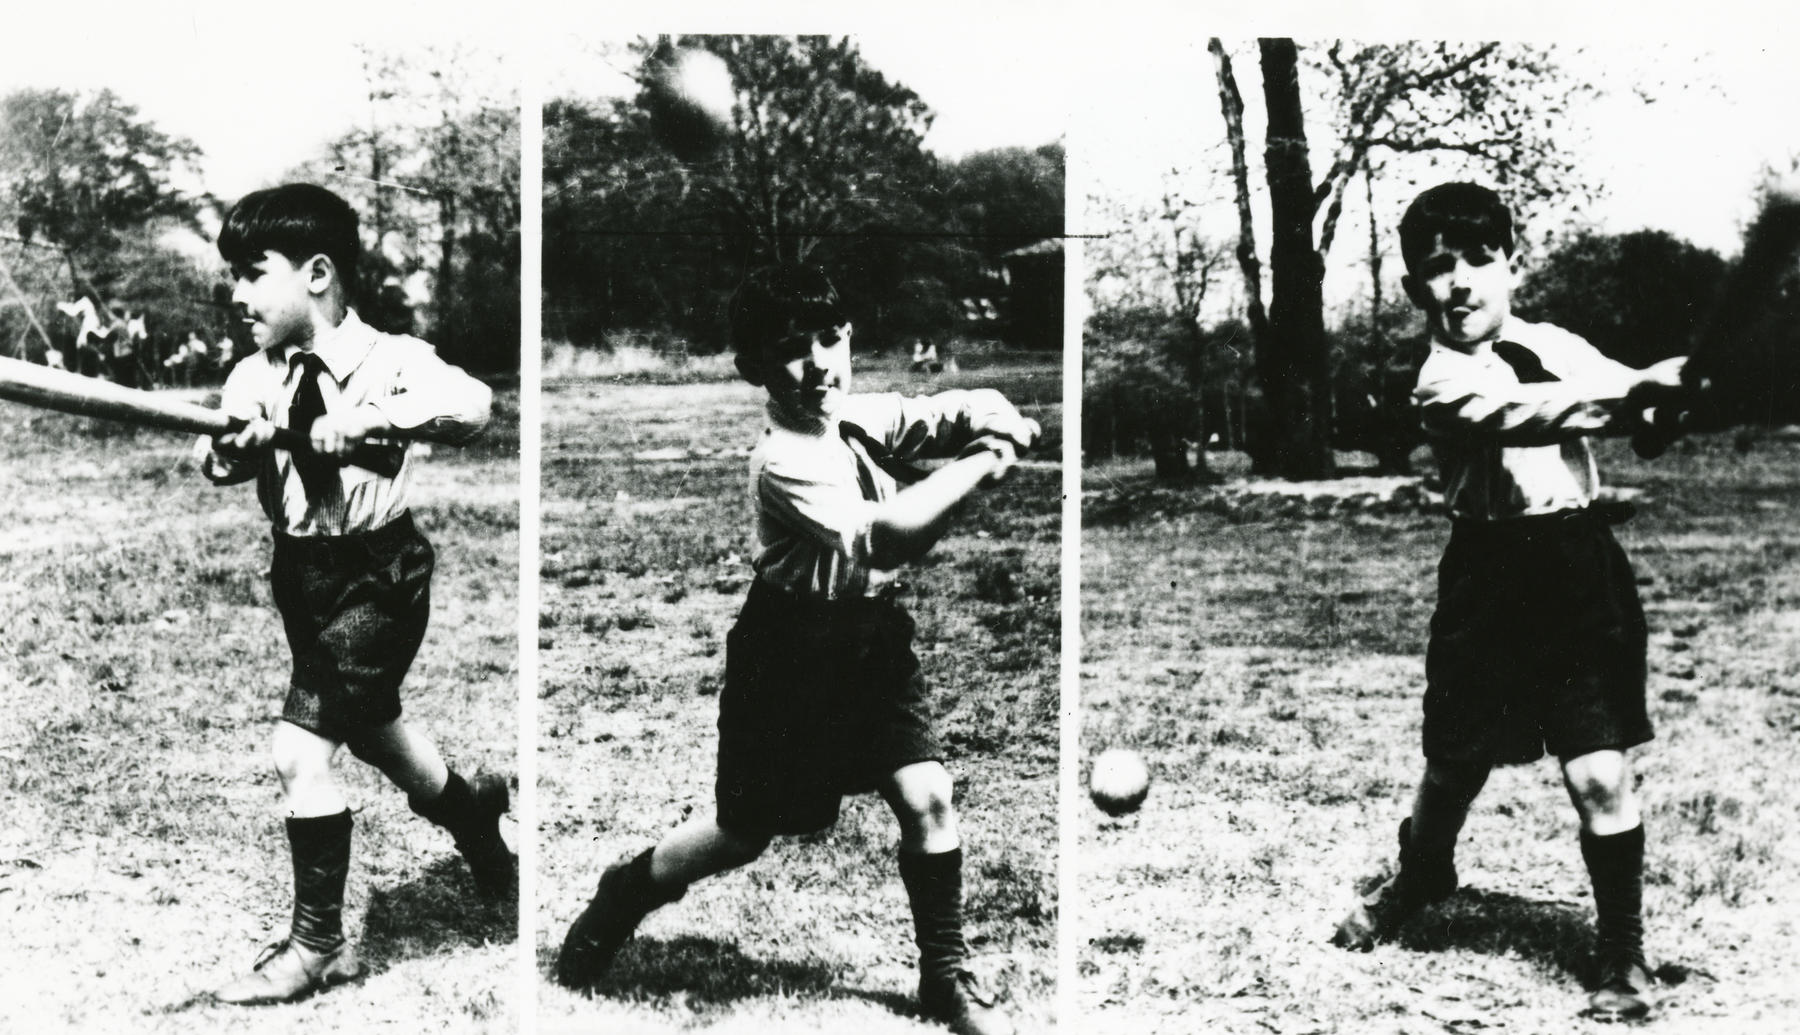 Koufax batting as a young boy. BL-190.72a (Rochester Times-Union / National Baseball Hall of Fame Library)